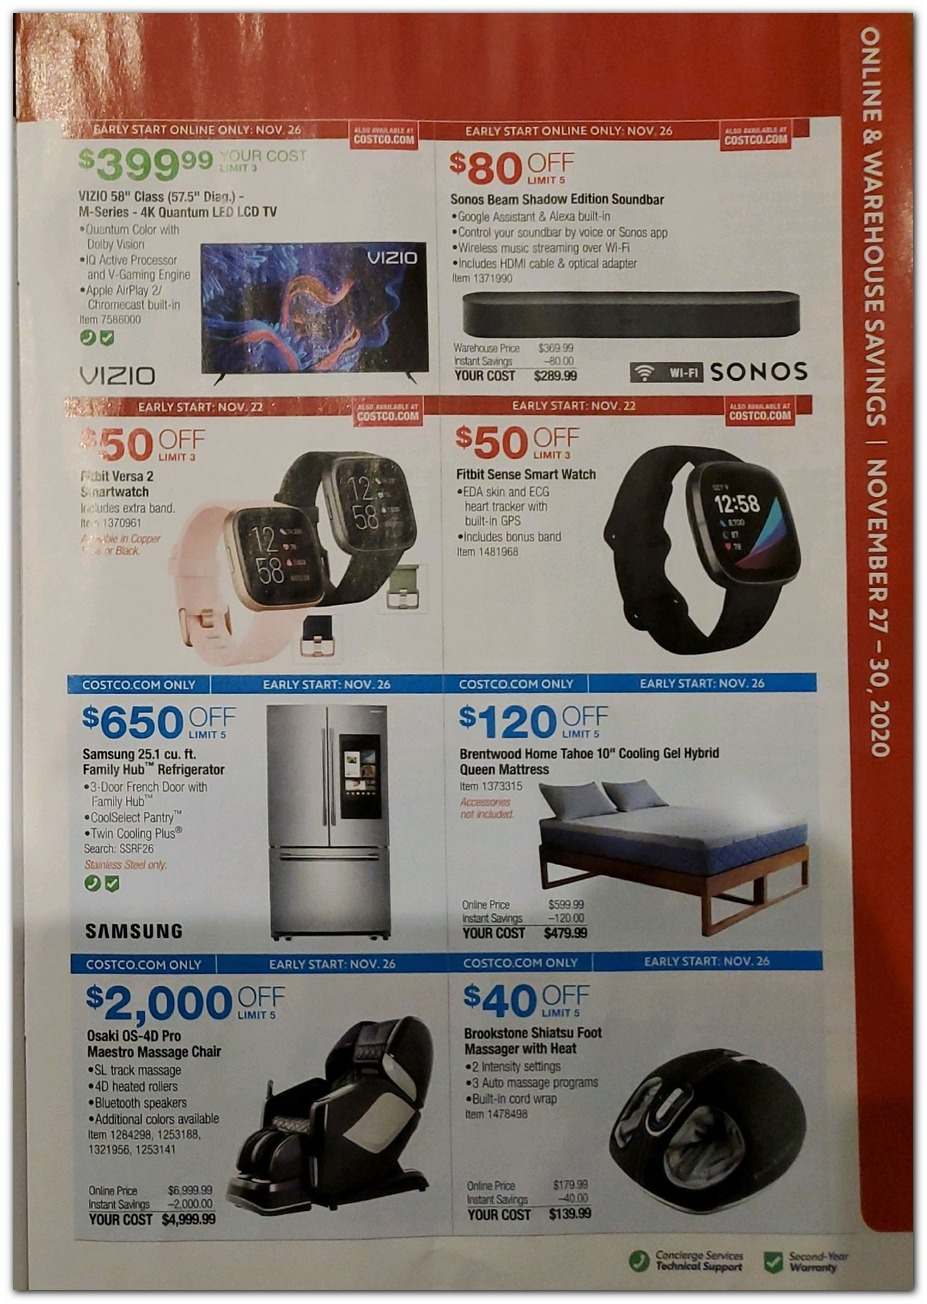 Black Friday - HDTV / Smart Watch / Massage